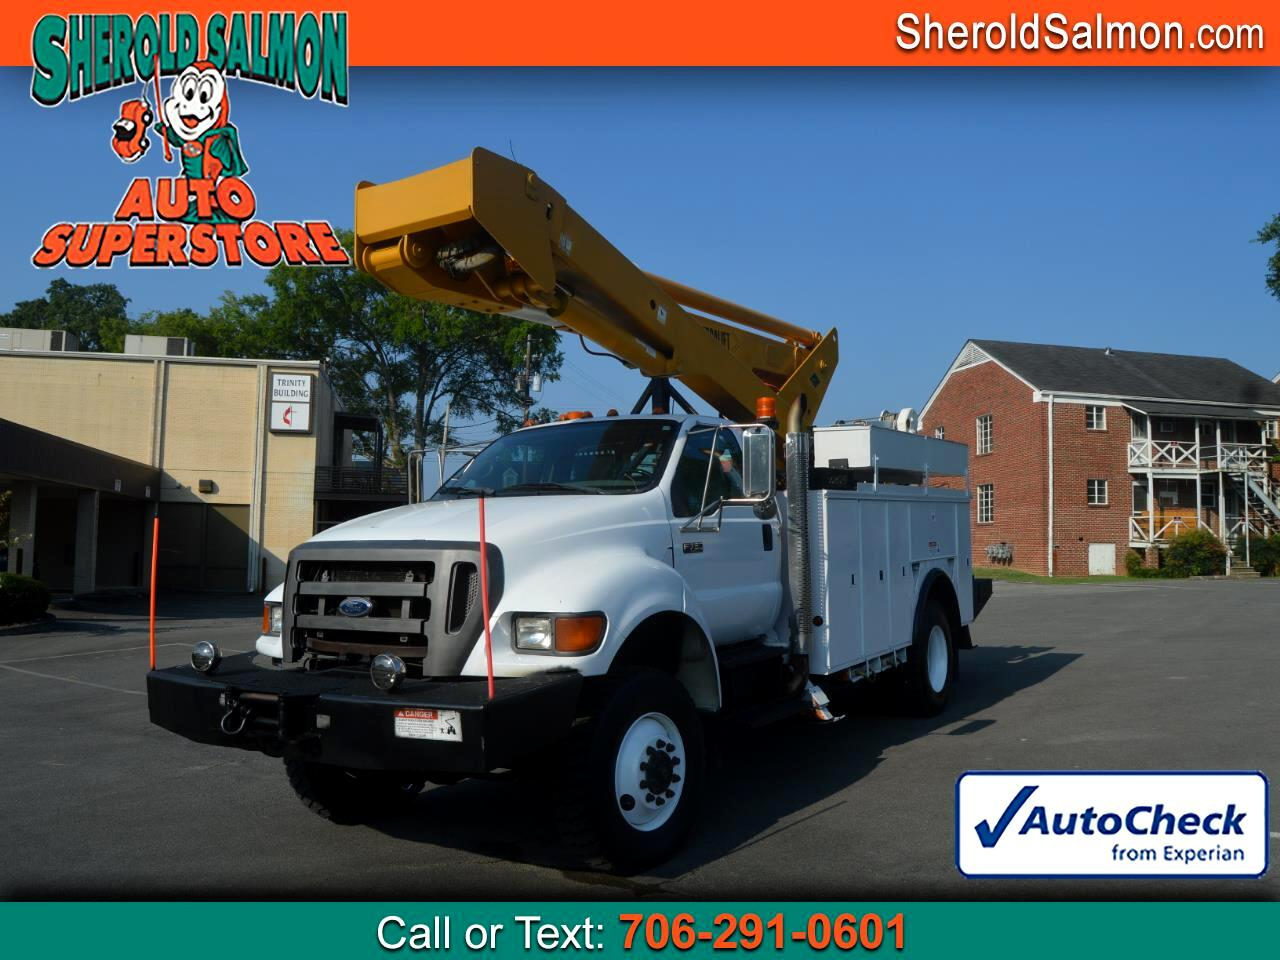 2004 Ford Super Duty F-750 Straight Frame Reg Cab XLT